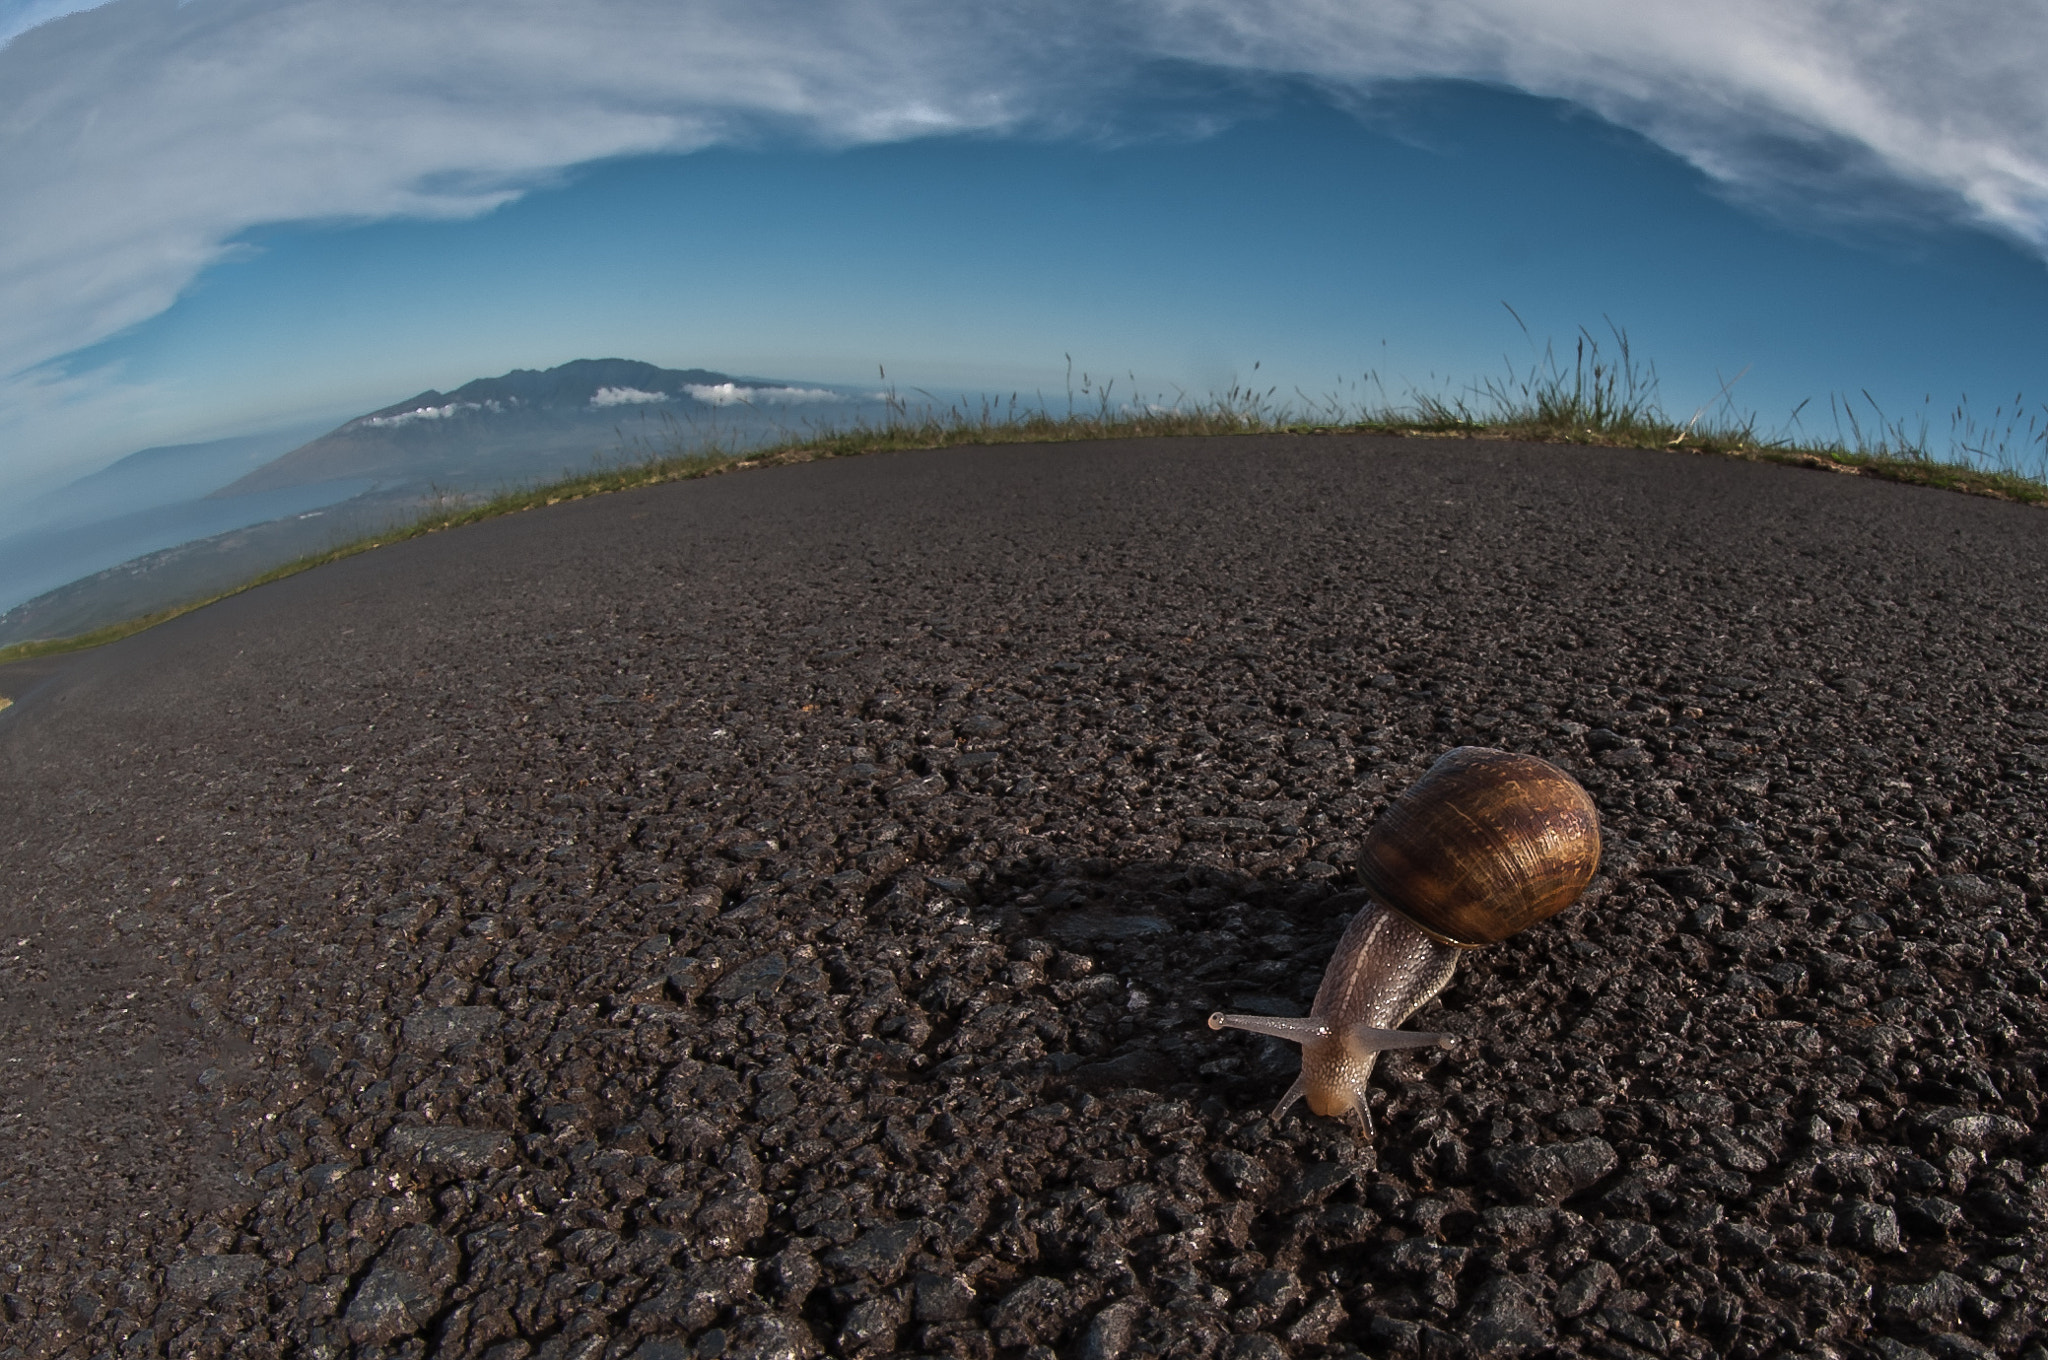 Photograph On the road to Haleakala by Brian Heiland on 500px